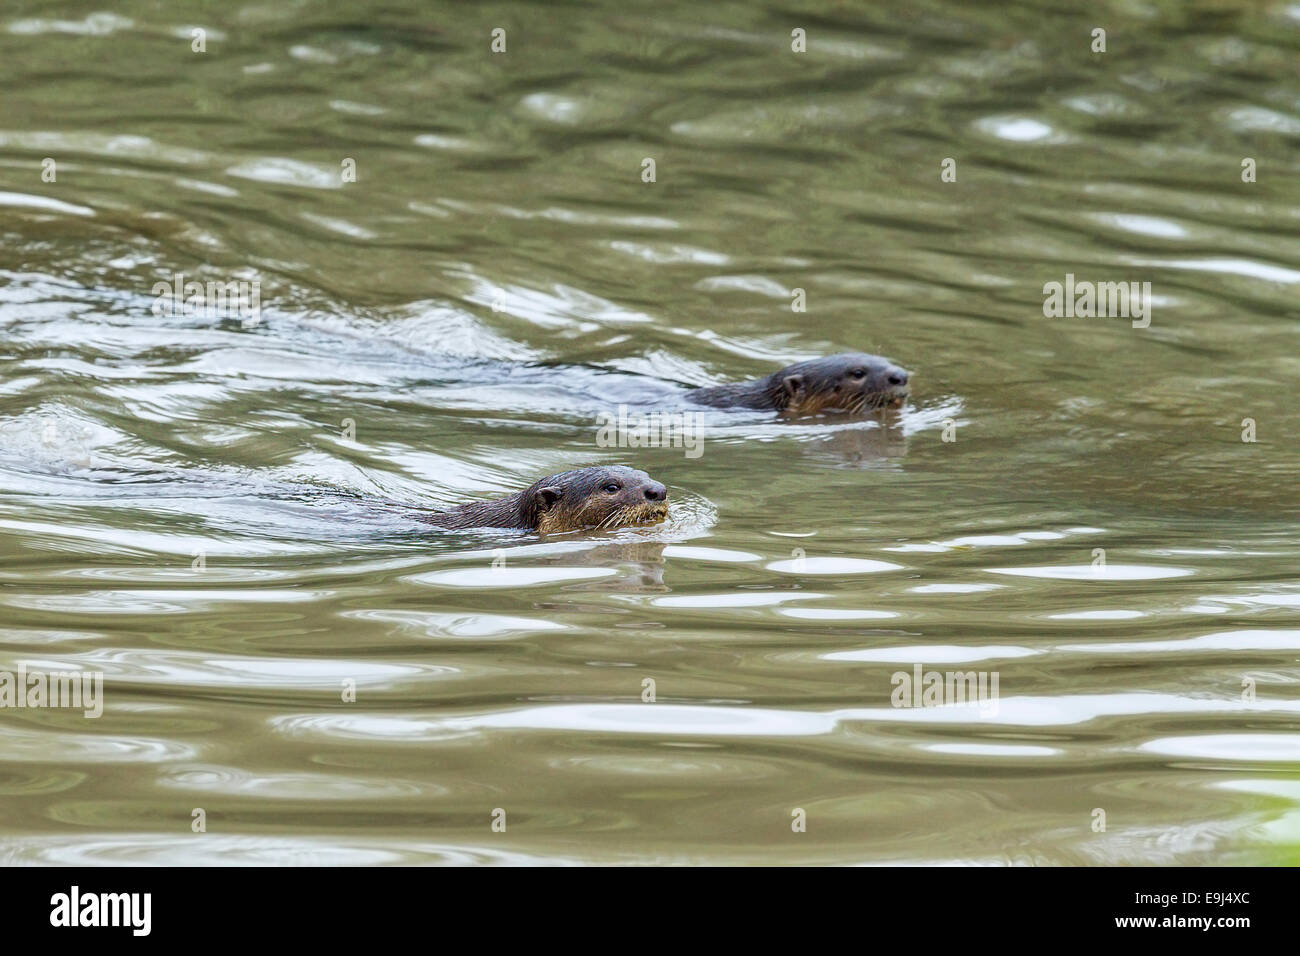 Smooth-coated otter (Lutrogale perspicillata) swimming in mangrove habitat, Singapore - Stock Image